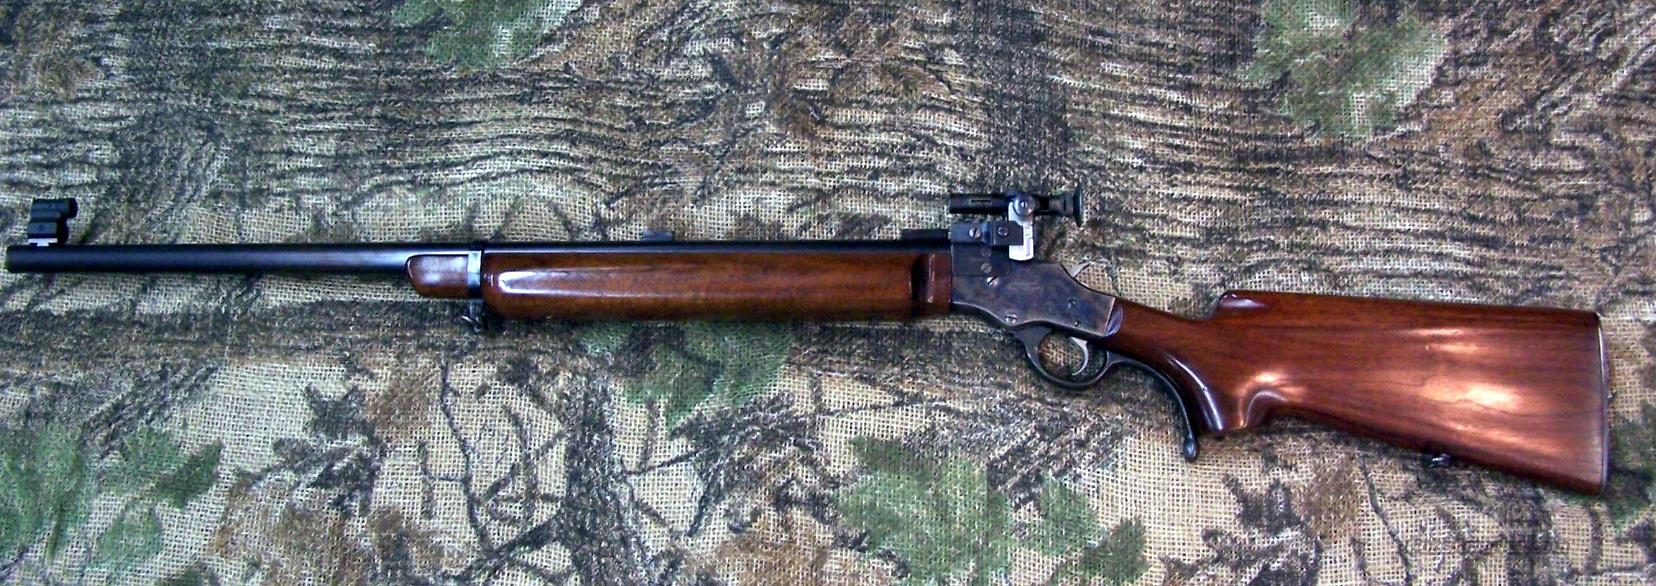 Stevens #417 Walnut Hill 22LR Target Rifle  Guns > Rifles > Stevens Rifles